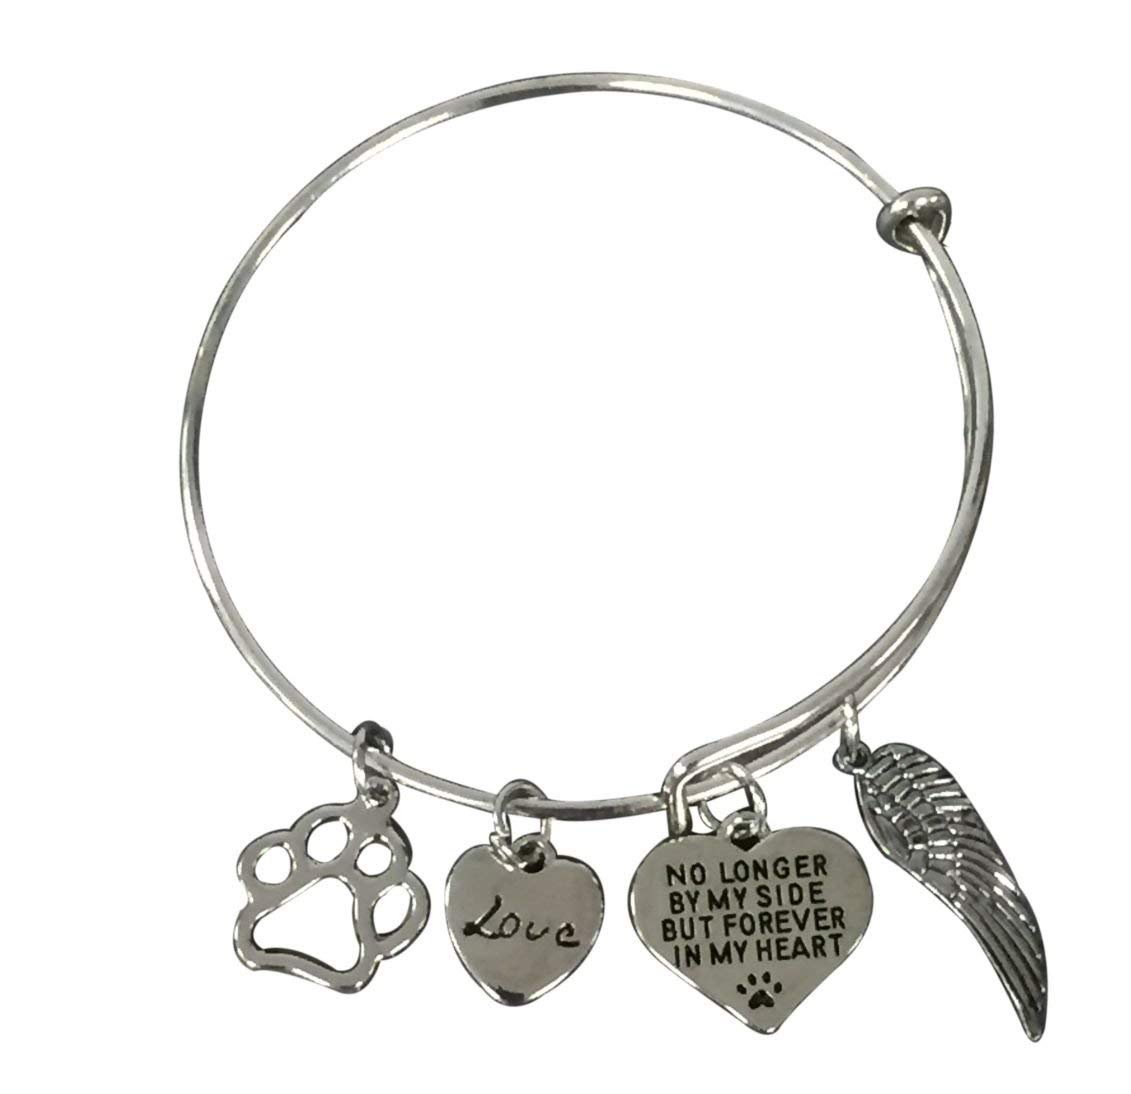 9d206c545 Get Quotations · Infinity Collection Dog Memorial Jewelry, Dog Charm  Bracelet - Paw Print Jewelry- Dog Lovers